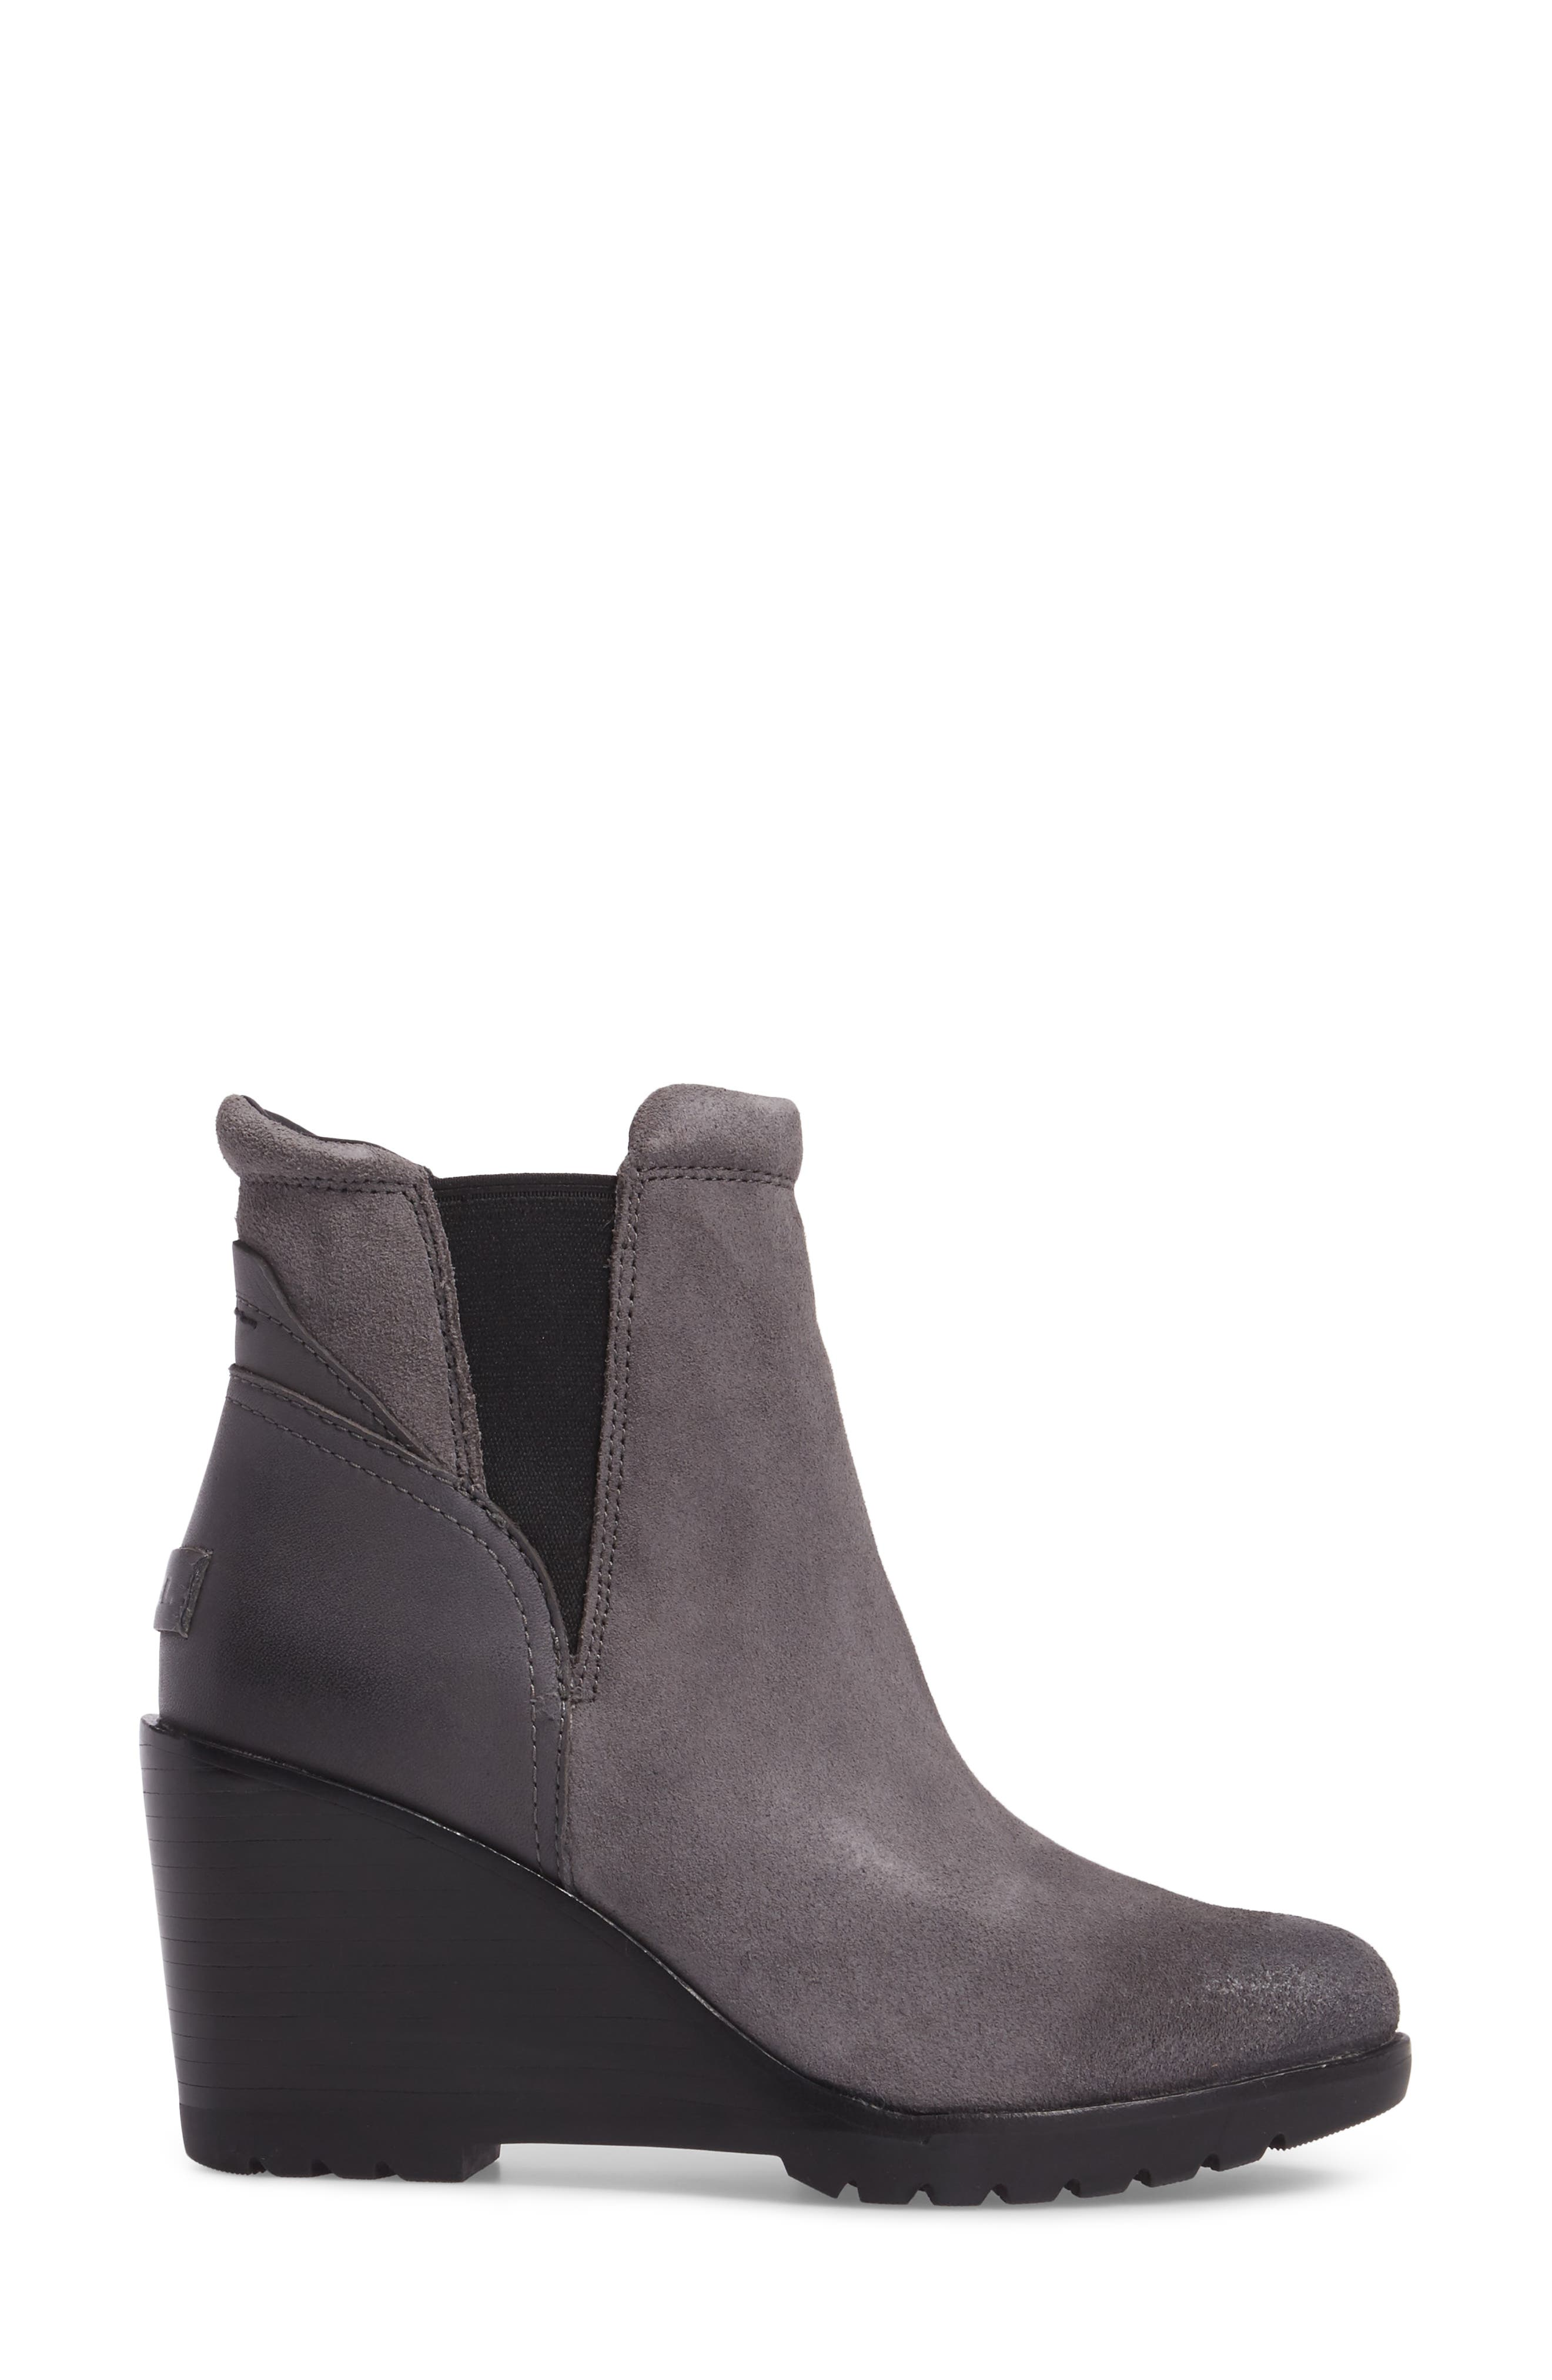 After Hours Chelsea Boot,                             Alternate thumbnail 3, color,                             Quarry